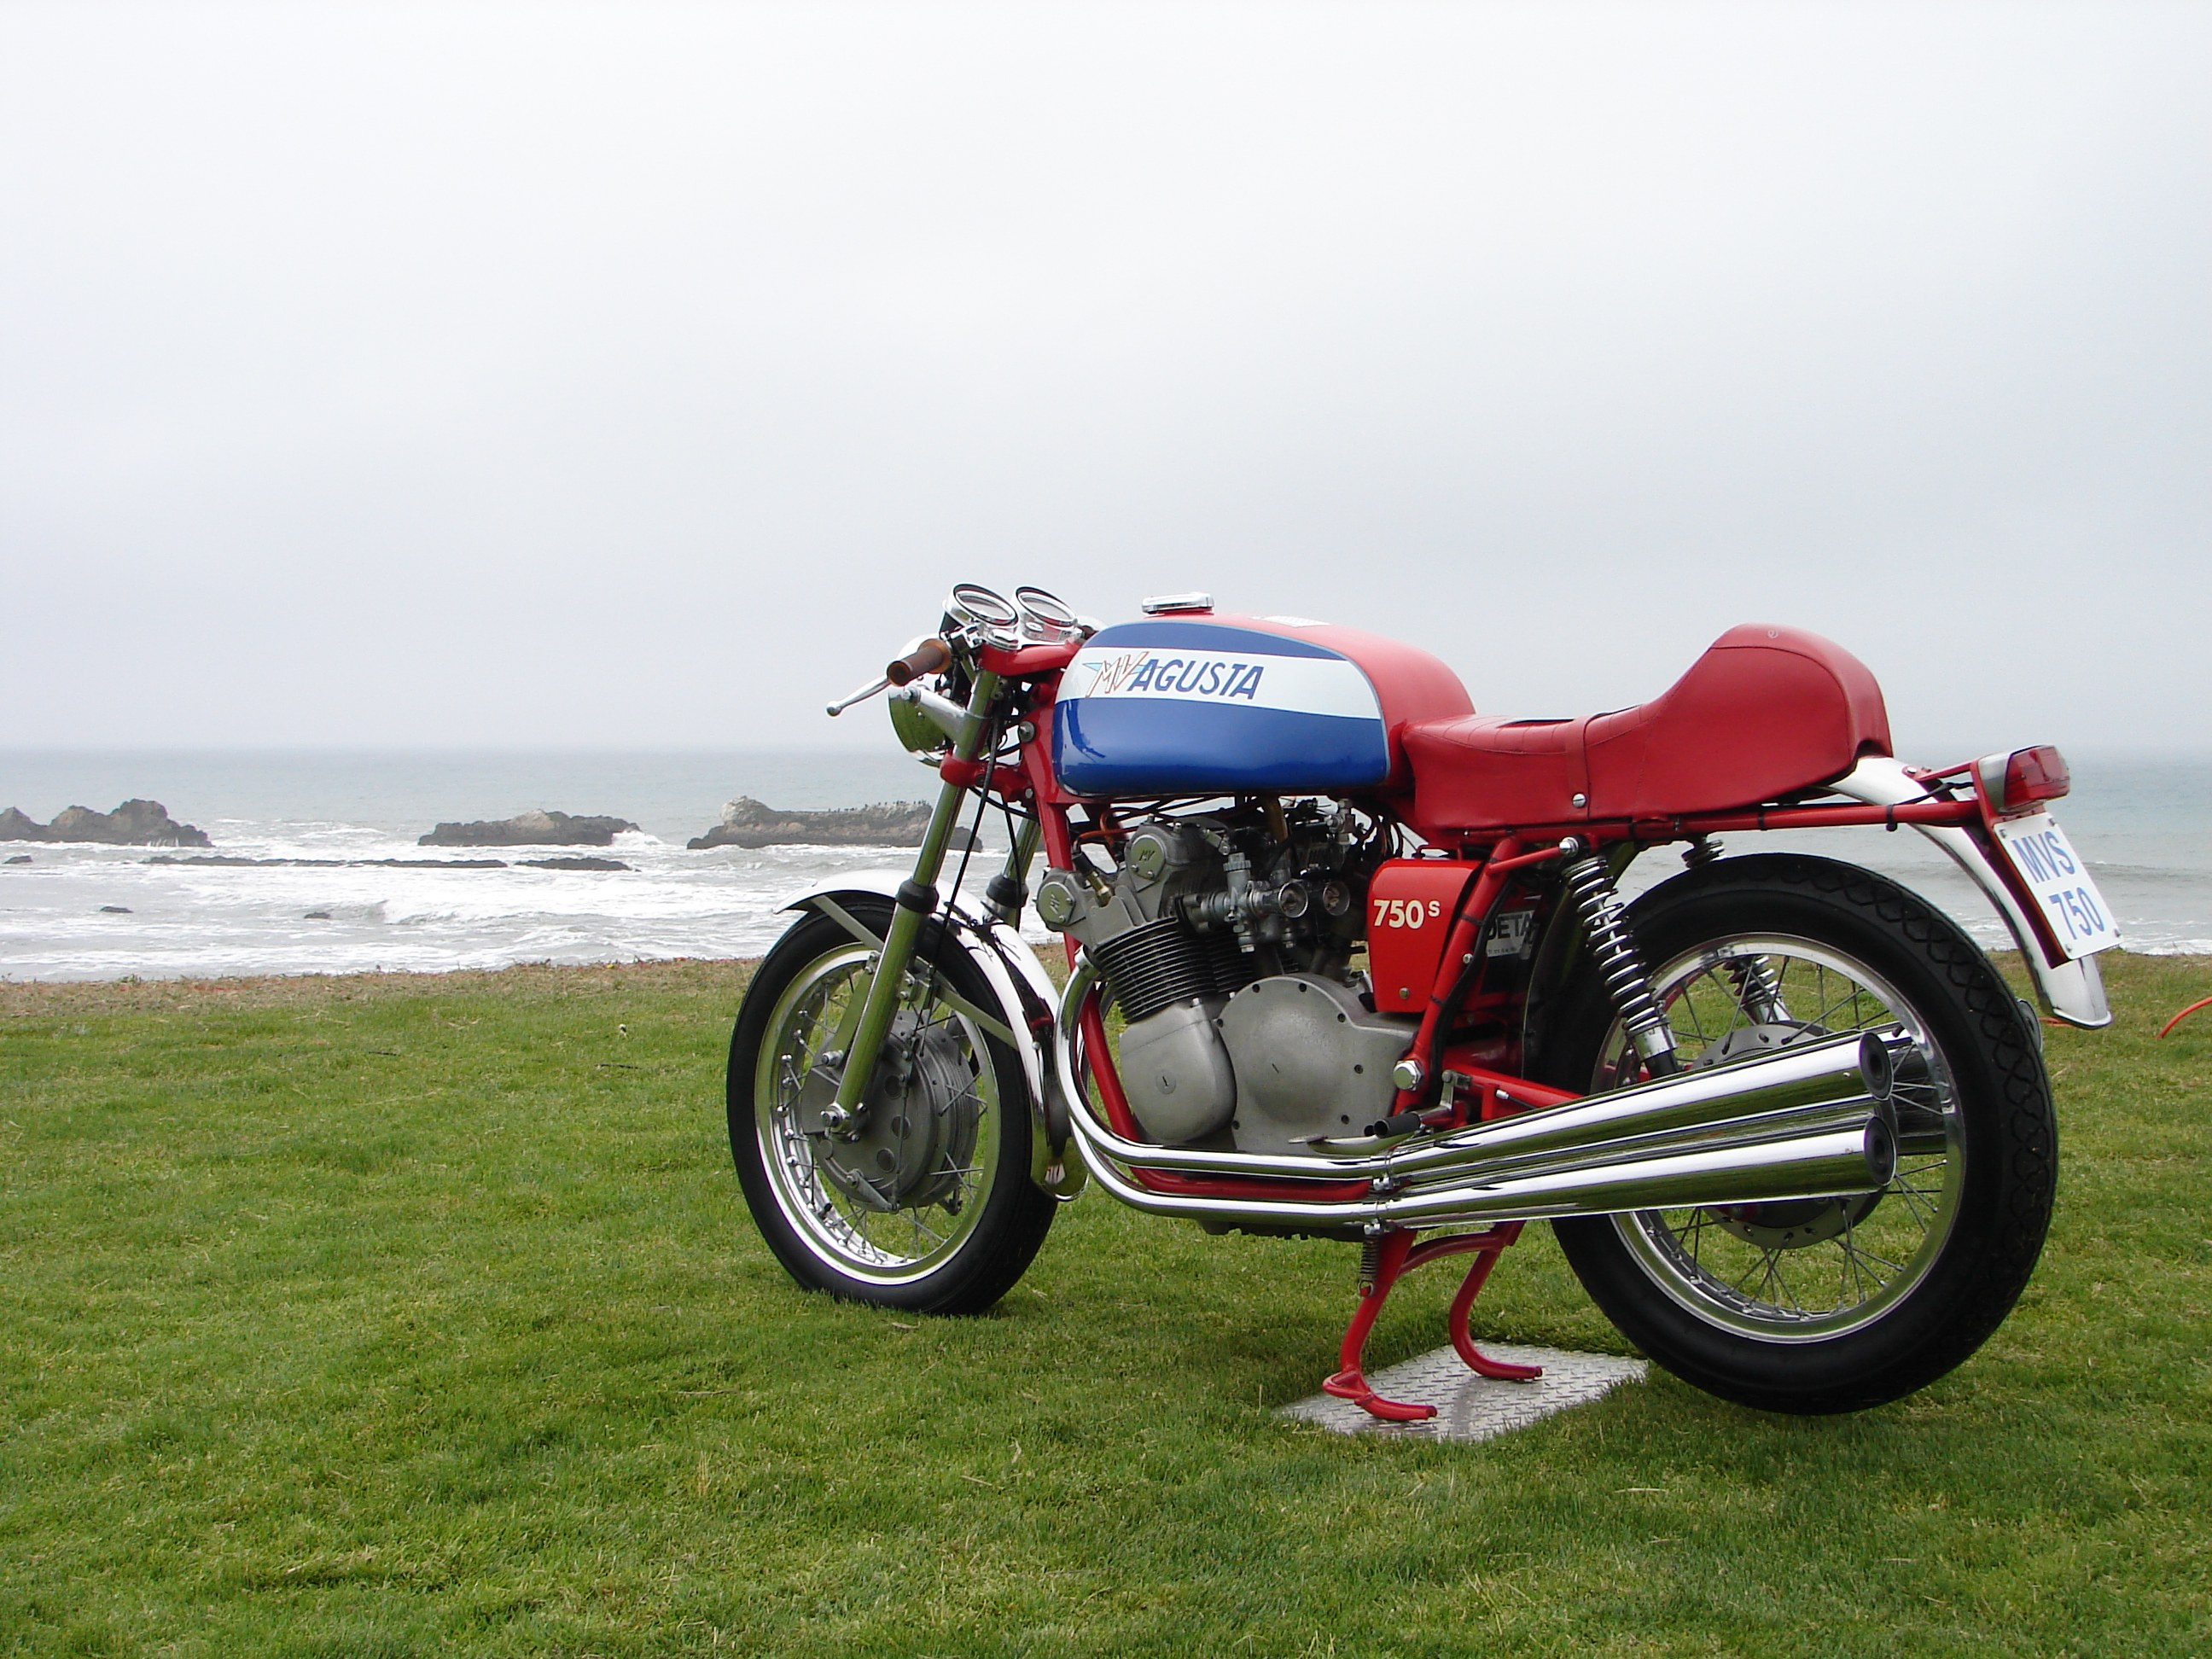 MV Agusta 750 S 1975 images #113344